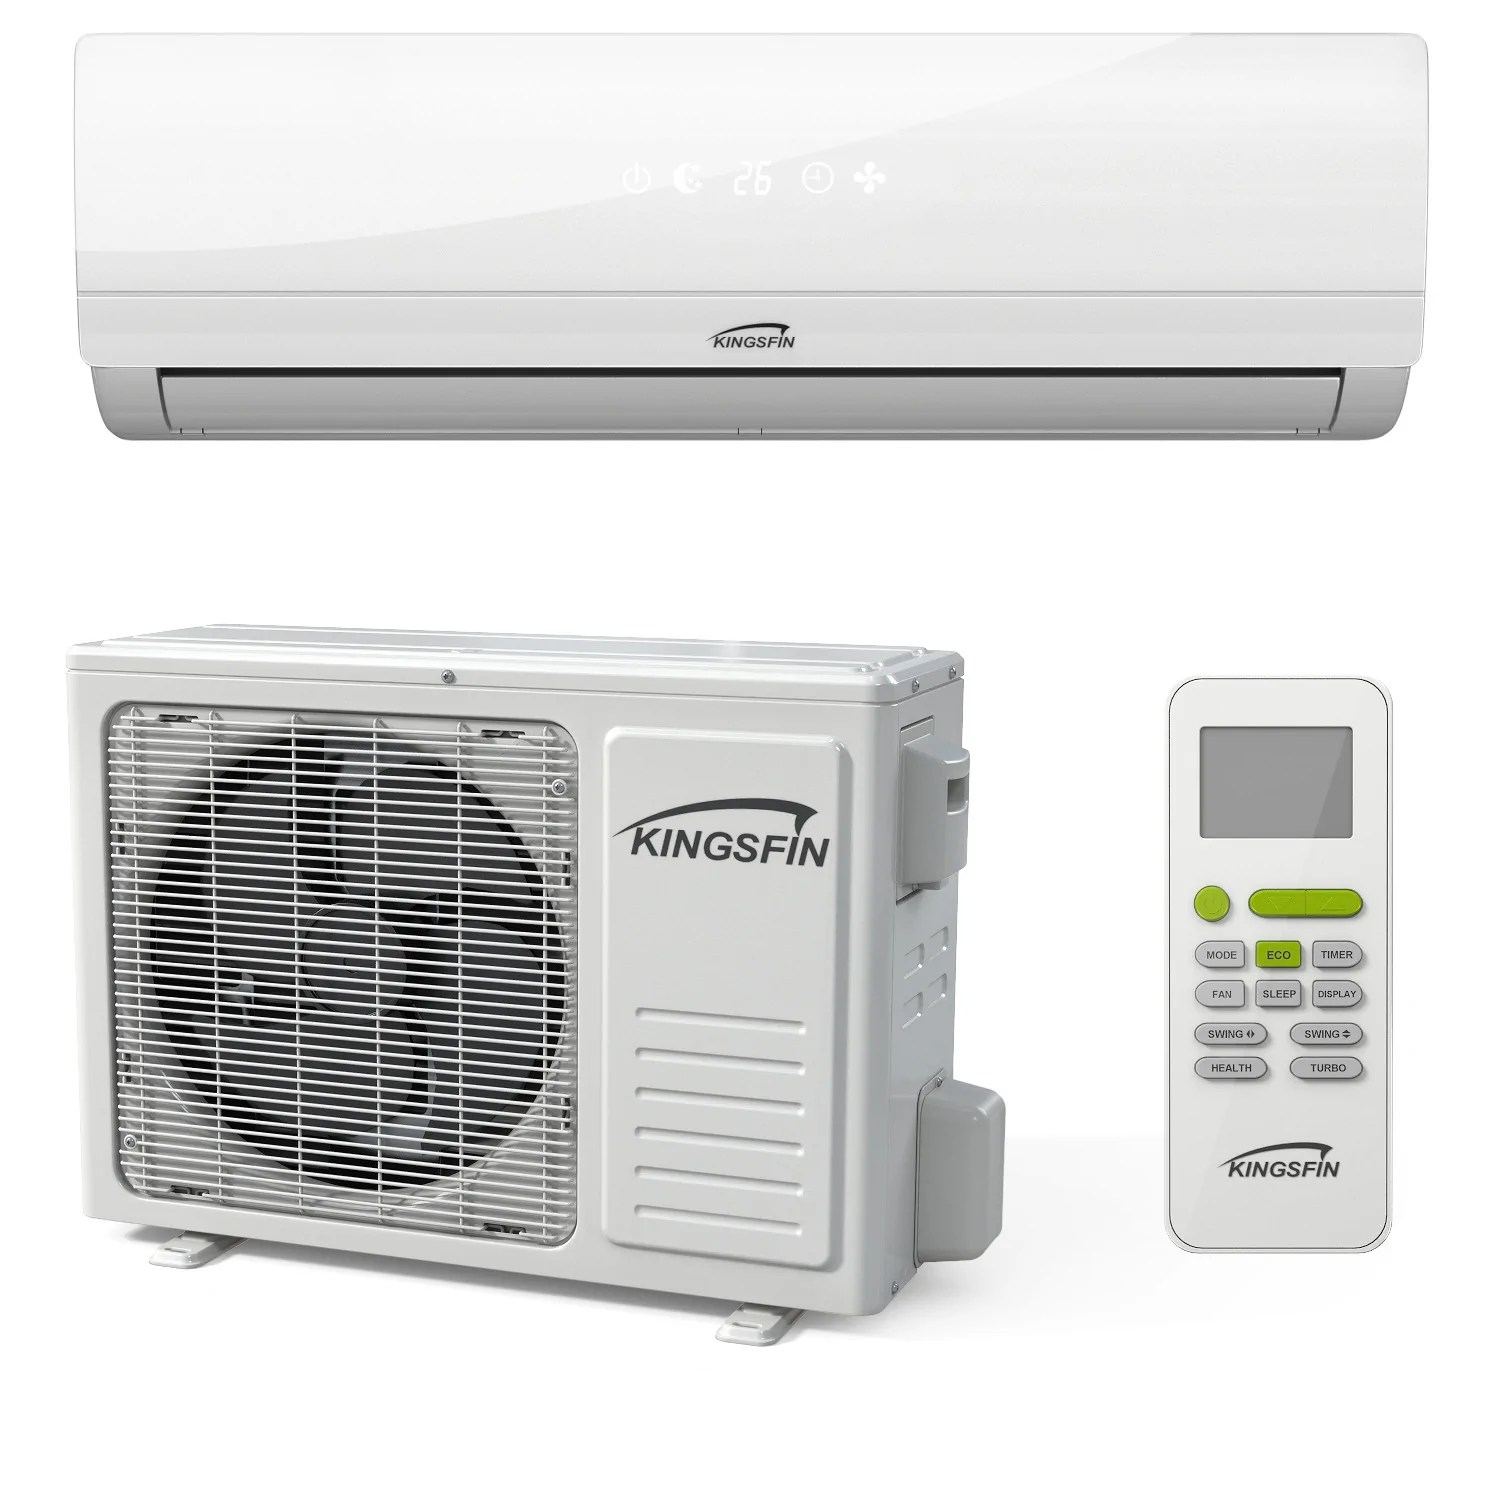 kingsfin mini split ductless ac air conditioner and heat pump 15 18 seer complete system [ 1500 x 1500 Pixel ]